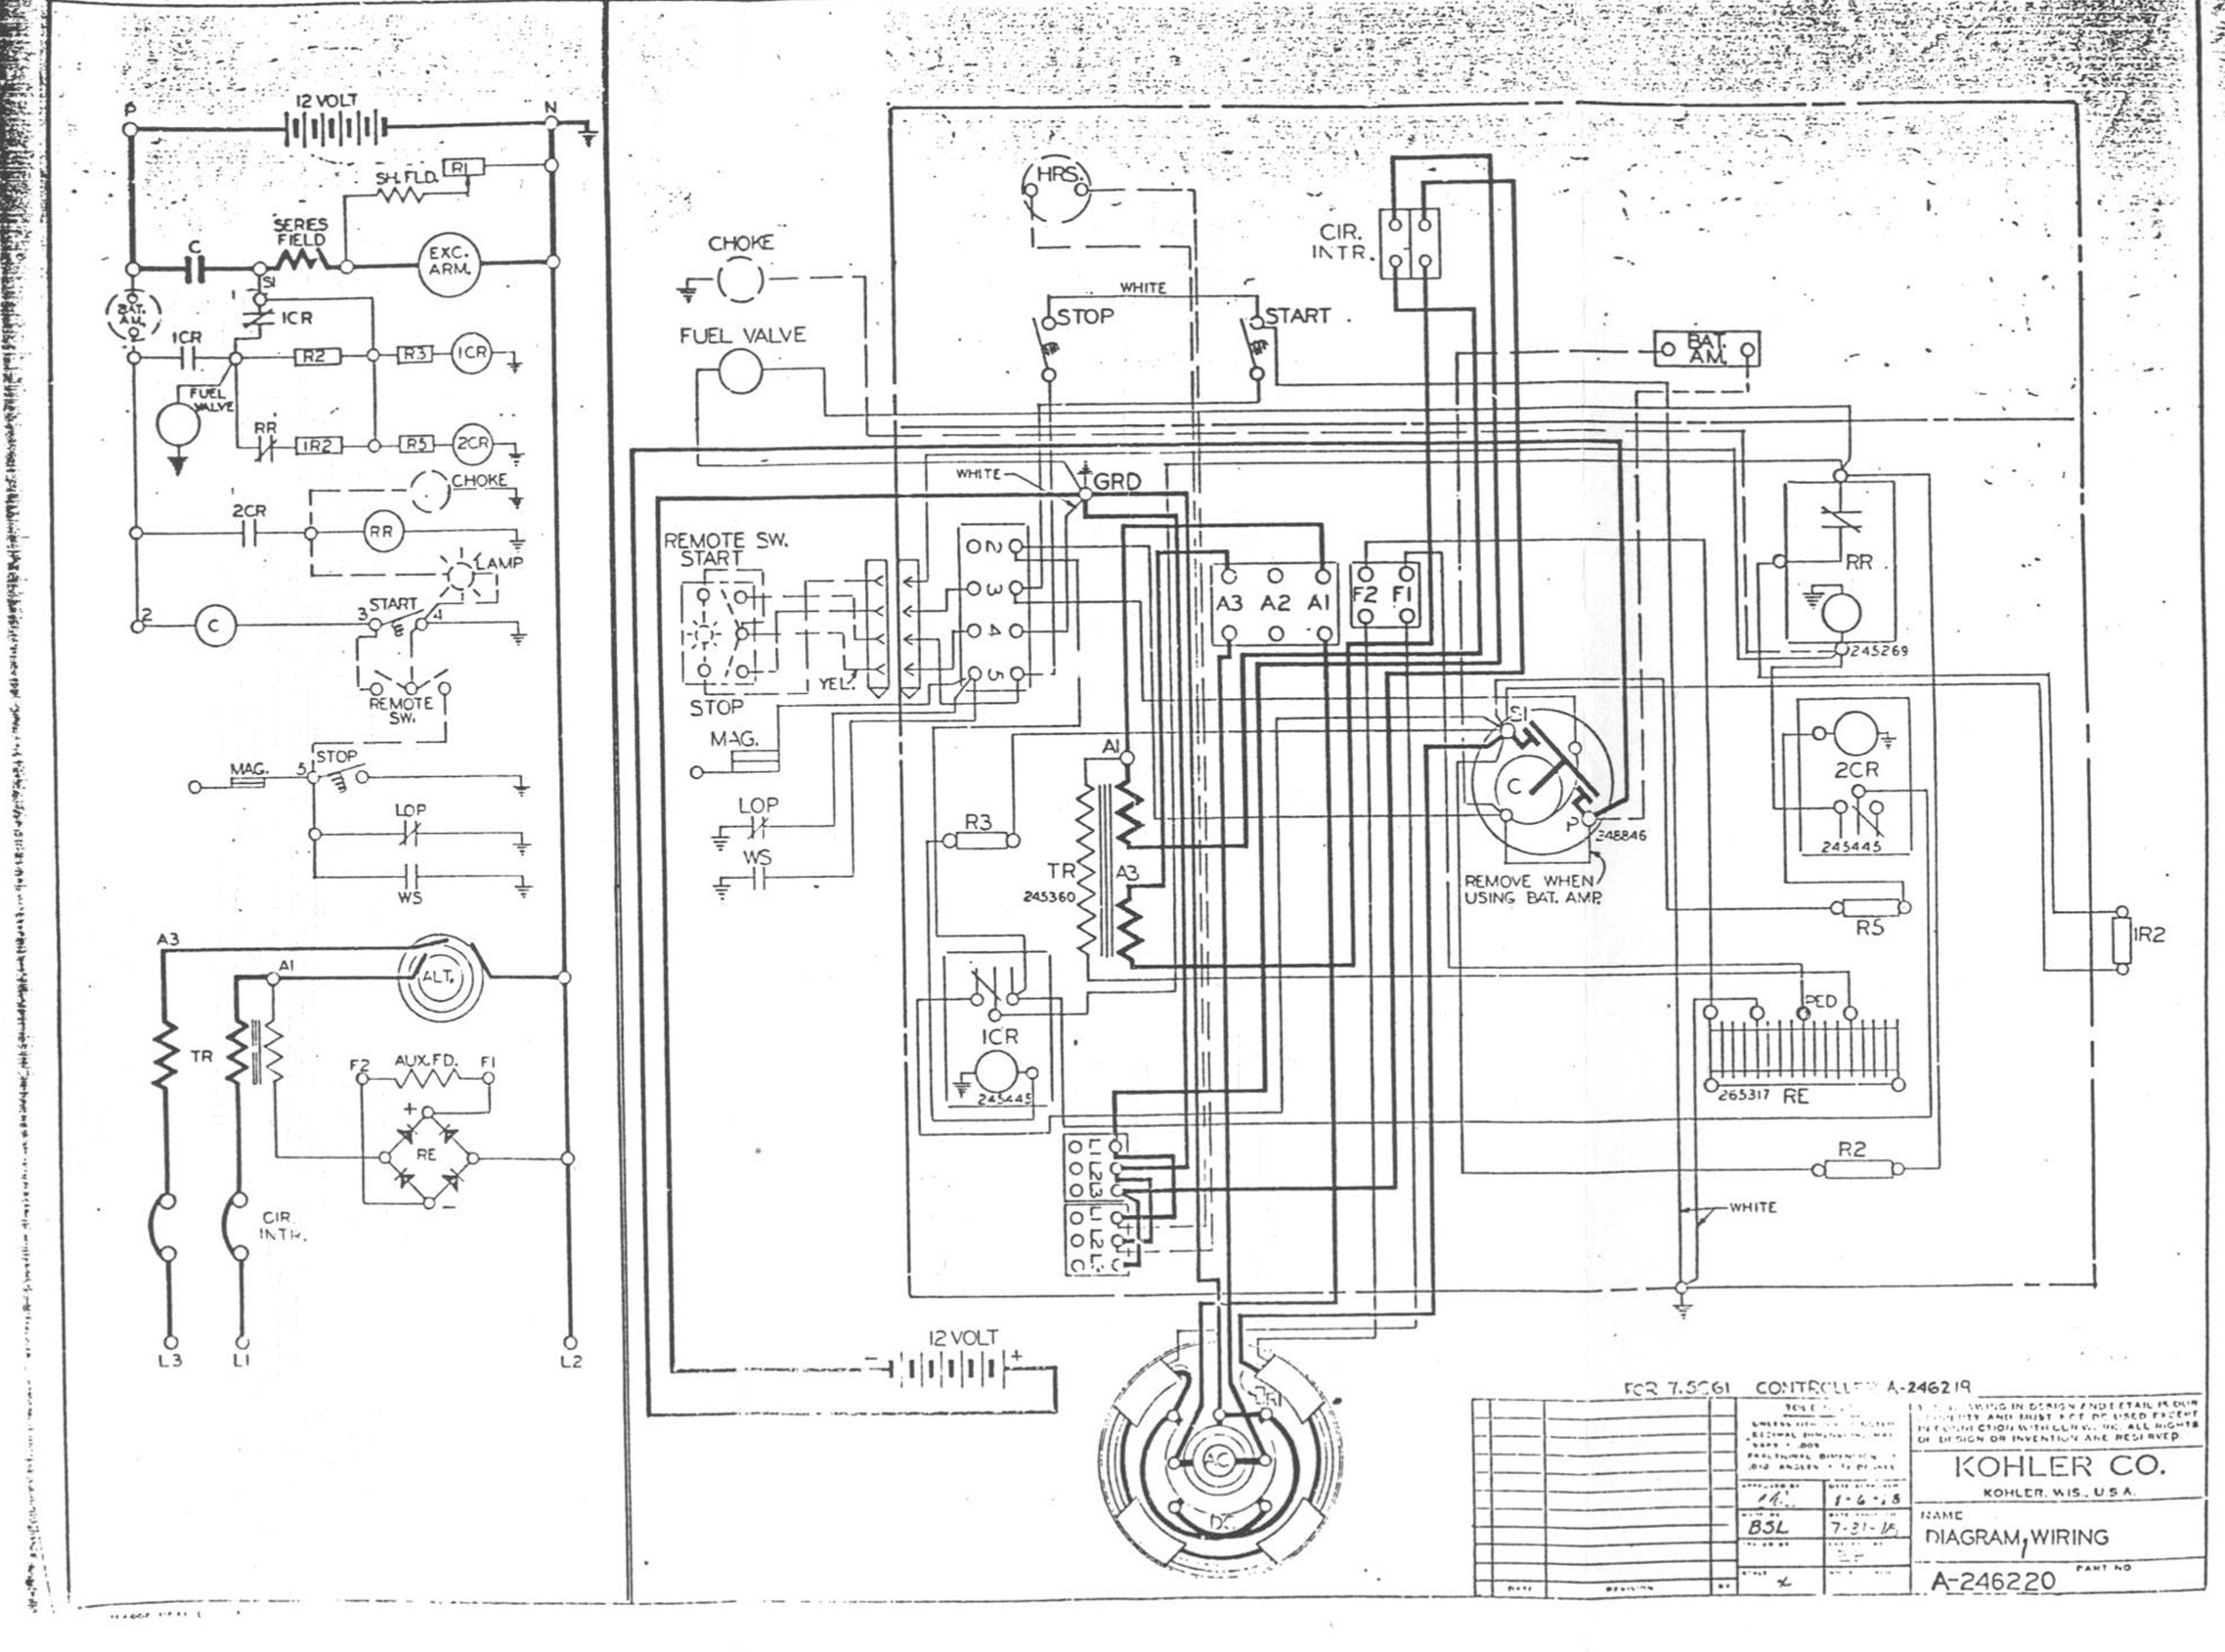 Perkins Sel Engine Parts Manual